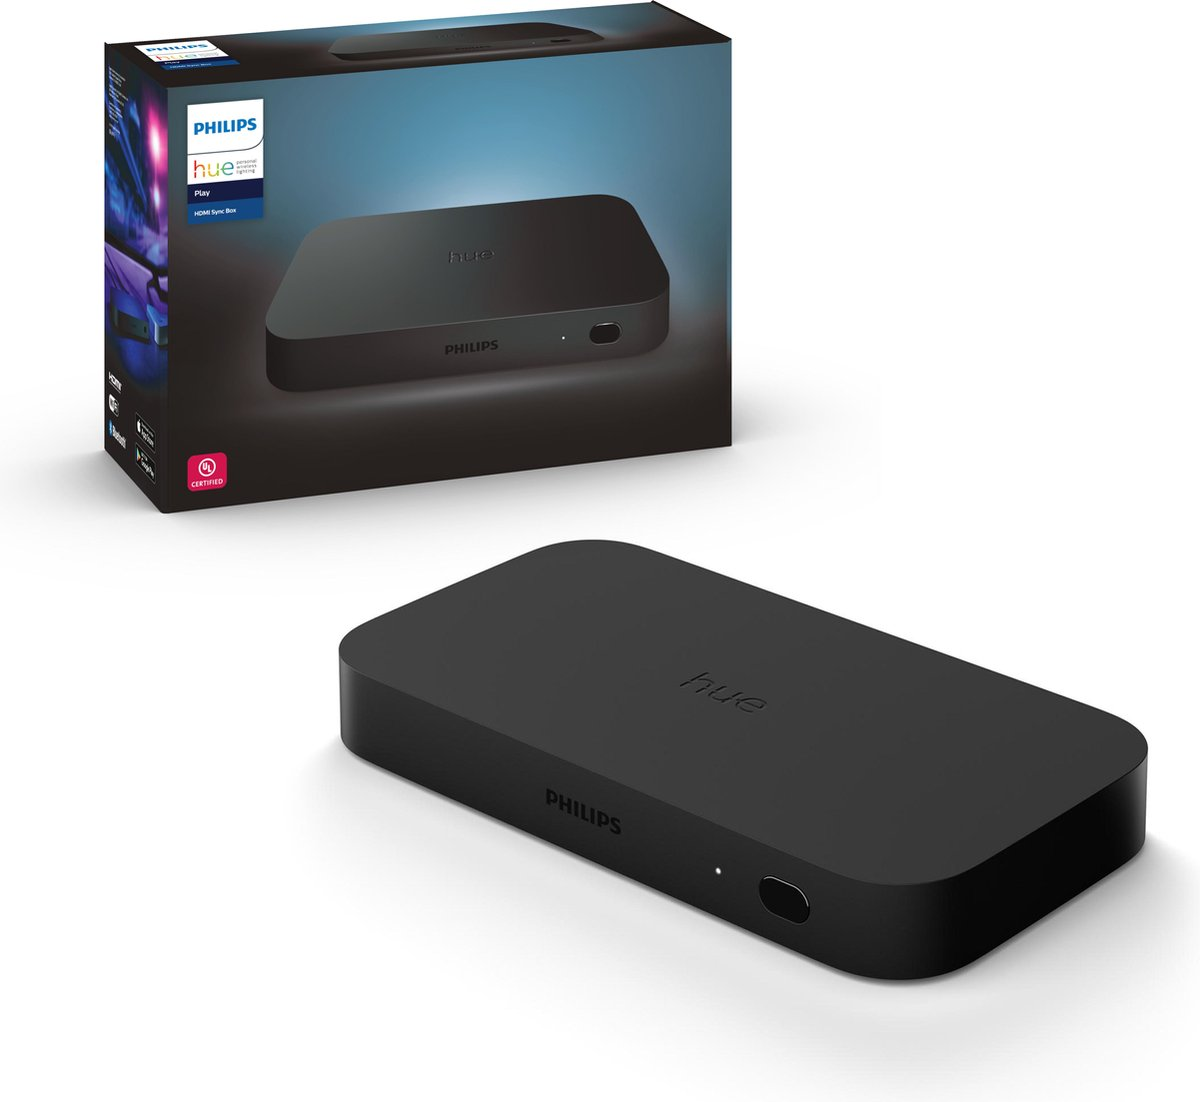 Philips Hue Play HDMI Sync Box Slimme verlichting Accessoire - incl. HDMI kabel